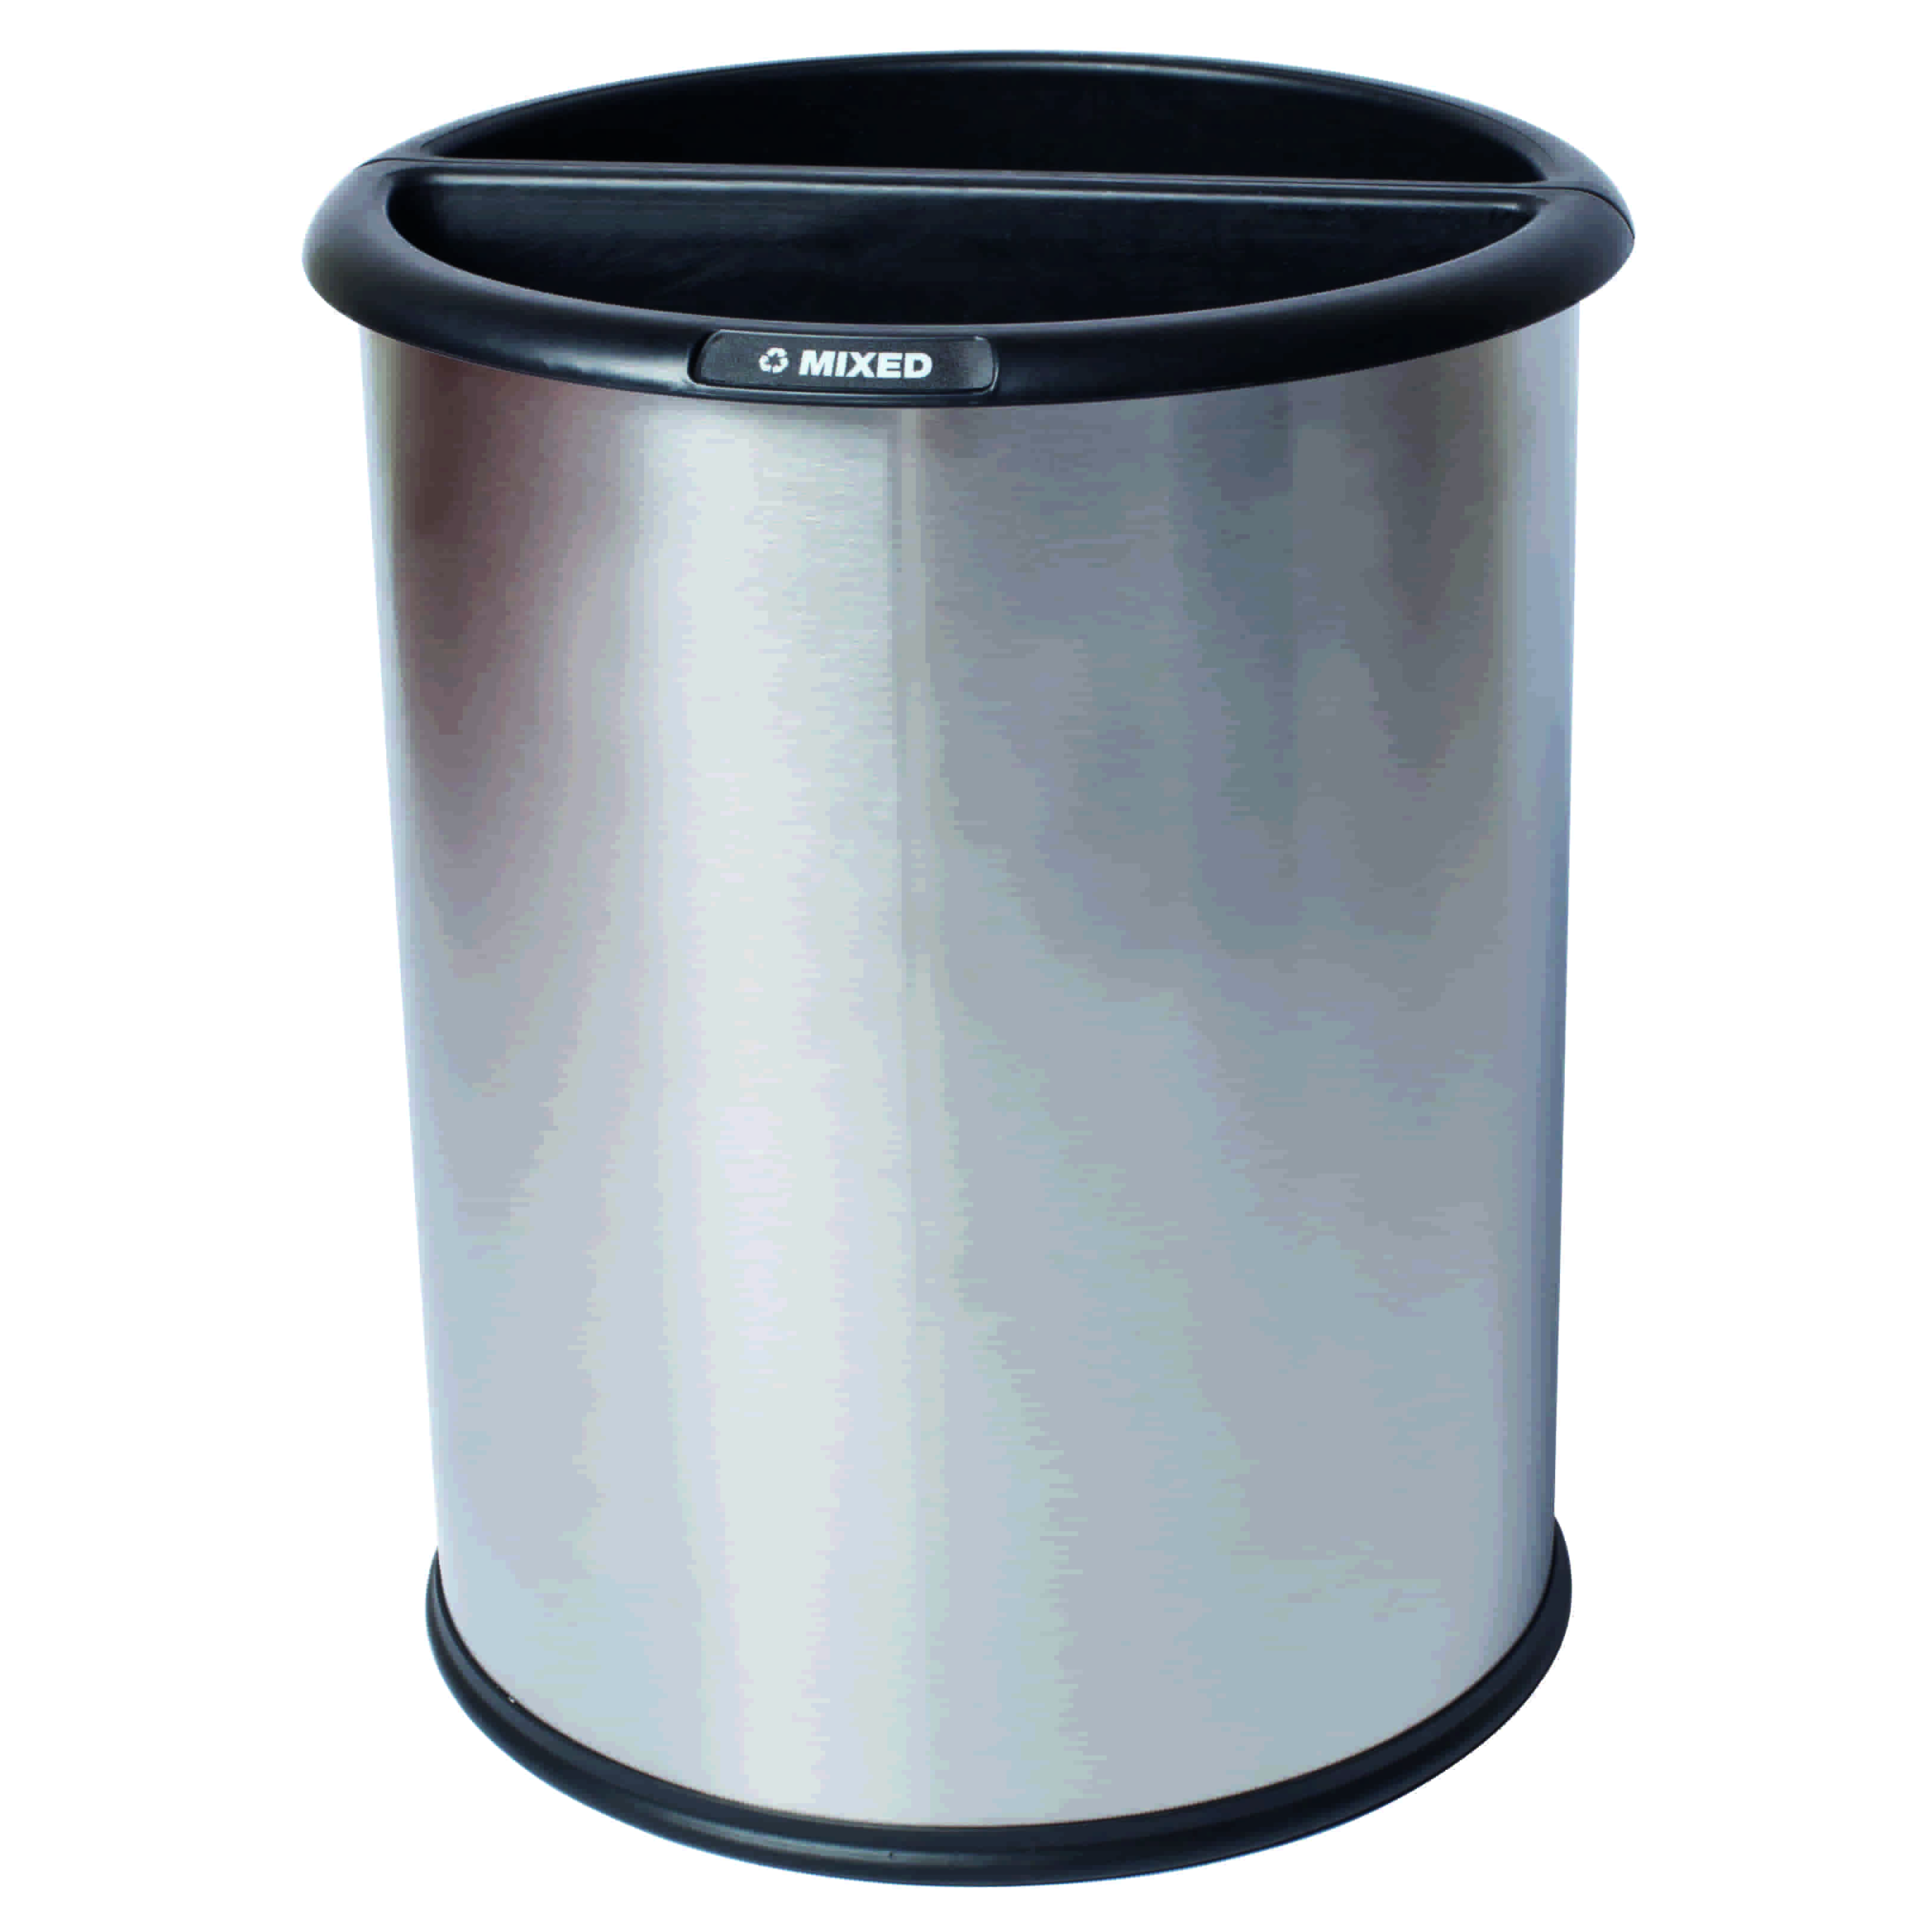 Innroom waste and recycling bin classic smooth in stainless steel